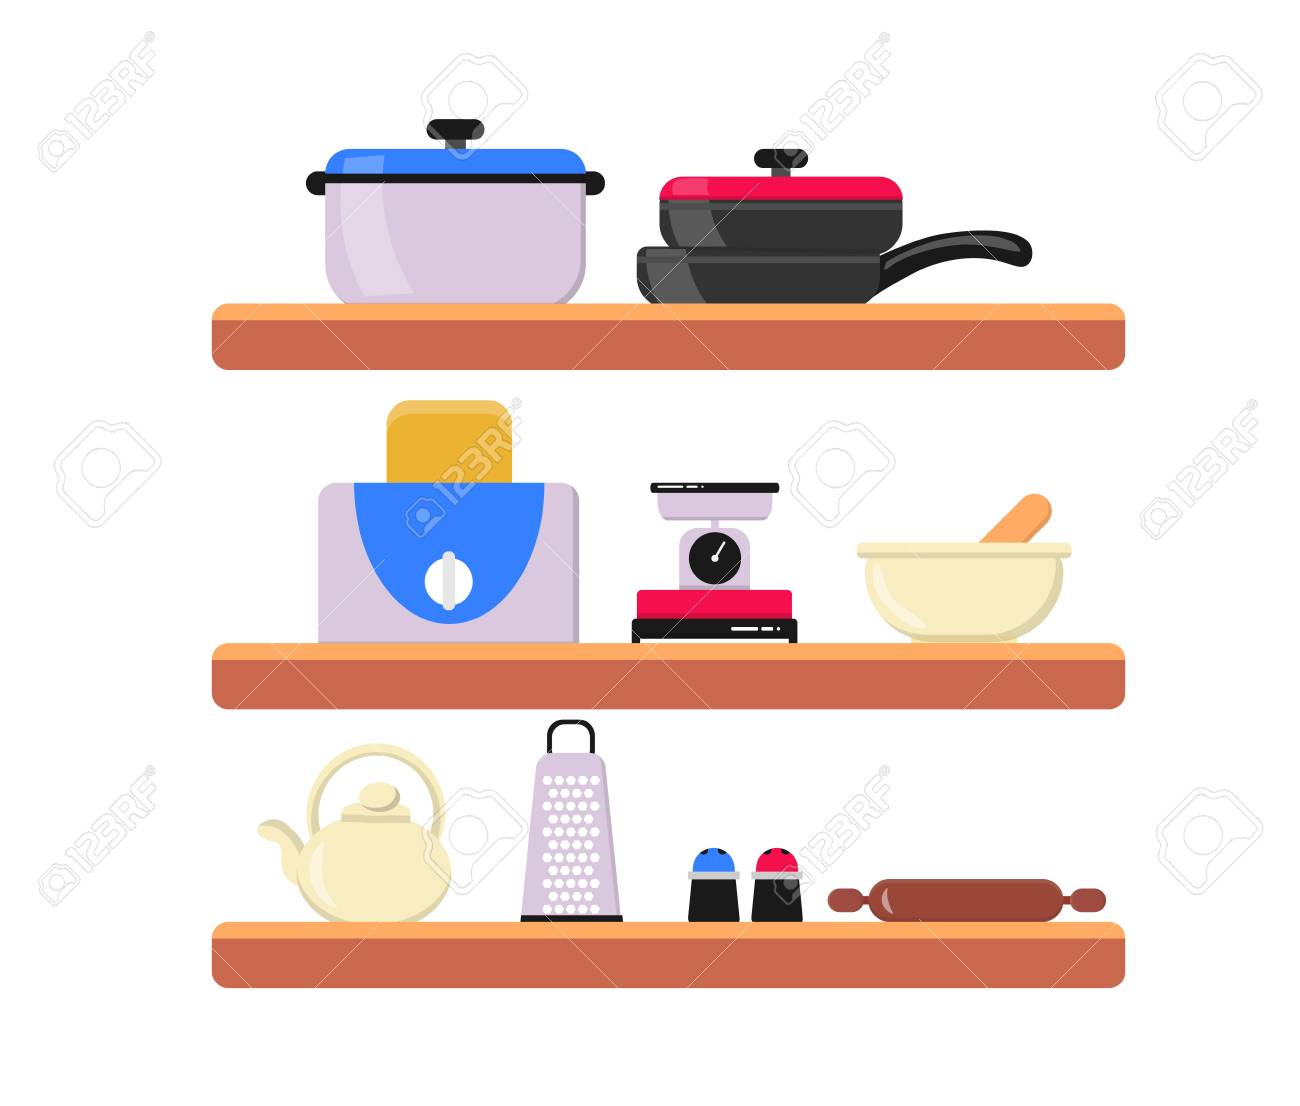 Kitchen Wooden Shelves With Utensils Shelves With Cooking Tools